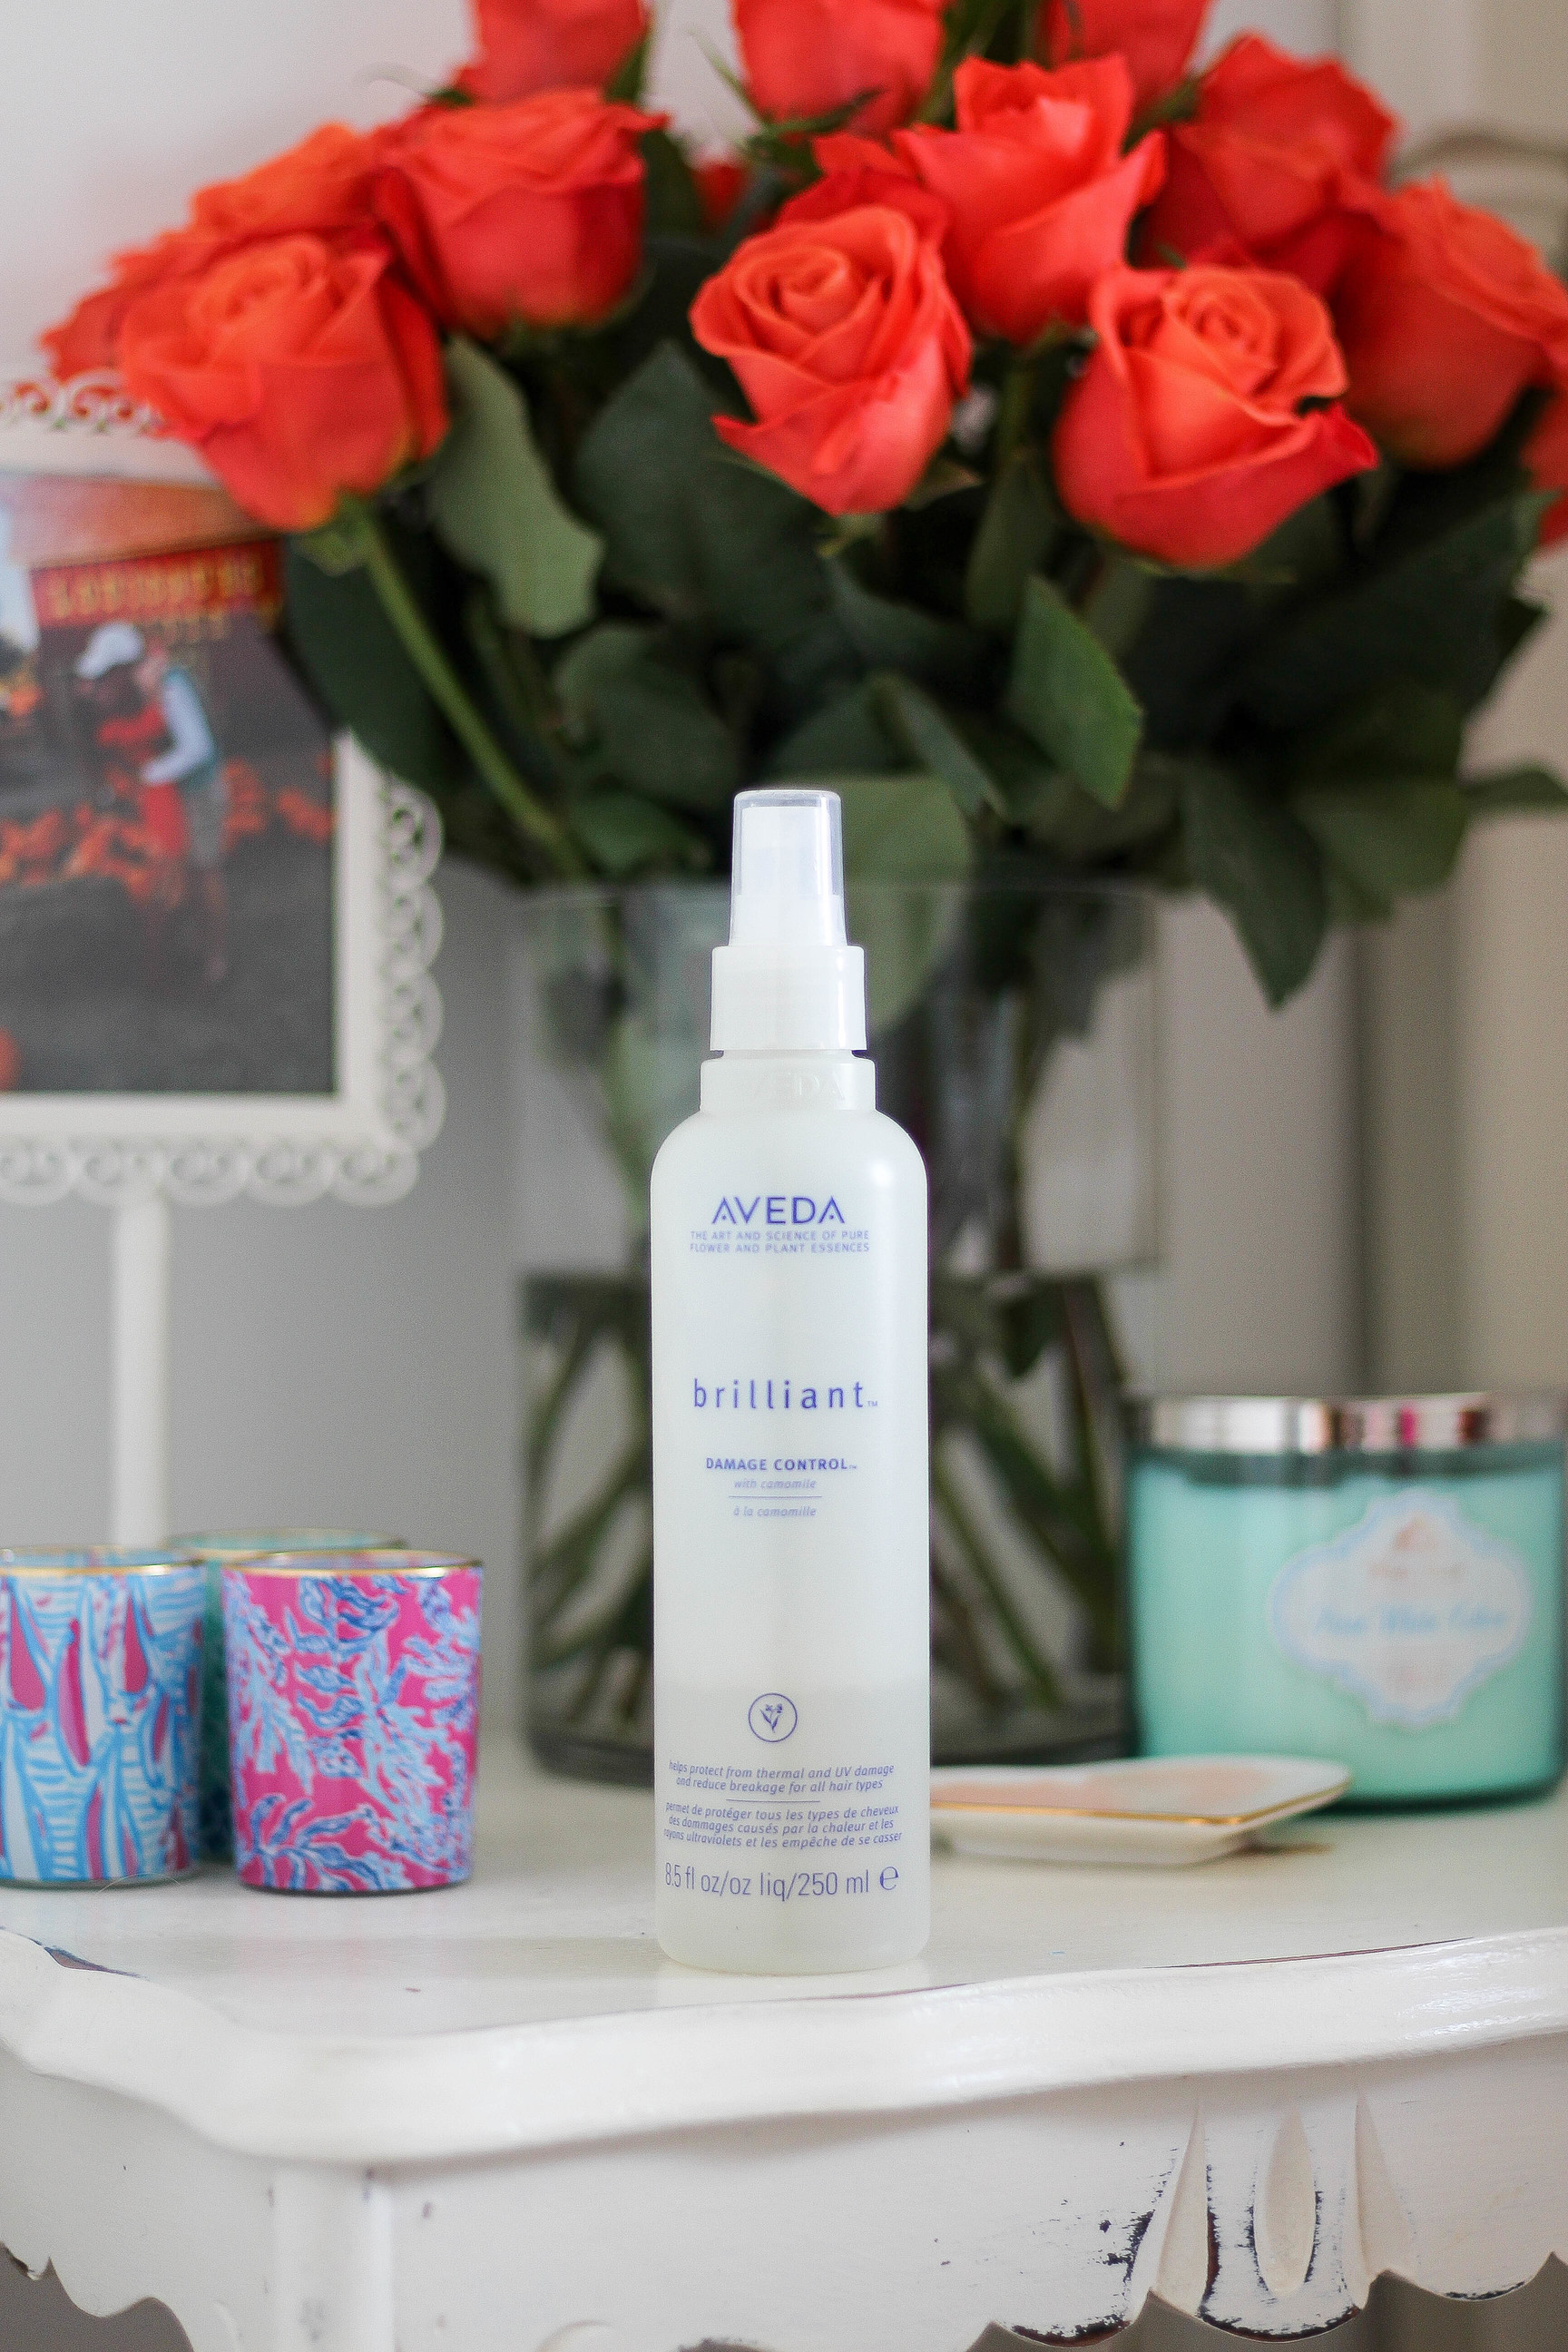 Summer Favorites, fresh flowers, candles, aveda hair care, tassel pillows, pineapples, and more! by lauren lindmark on daily dose of charm